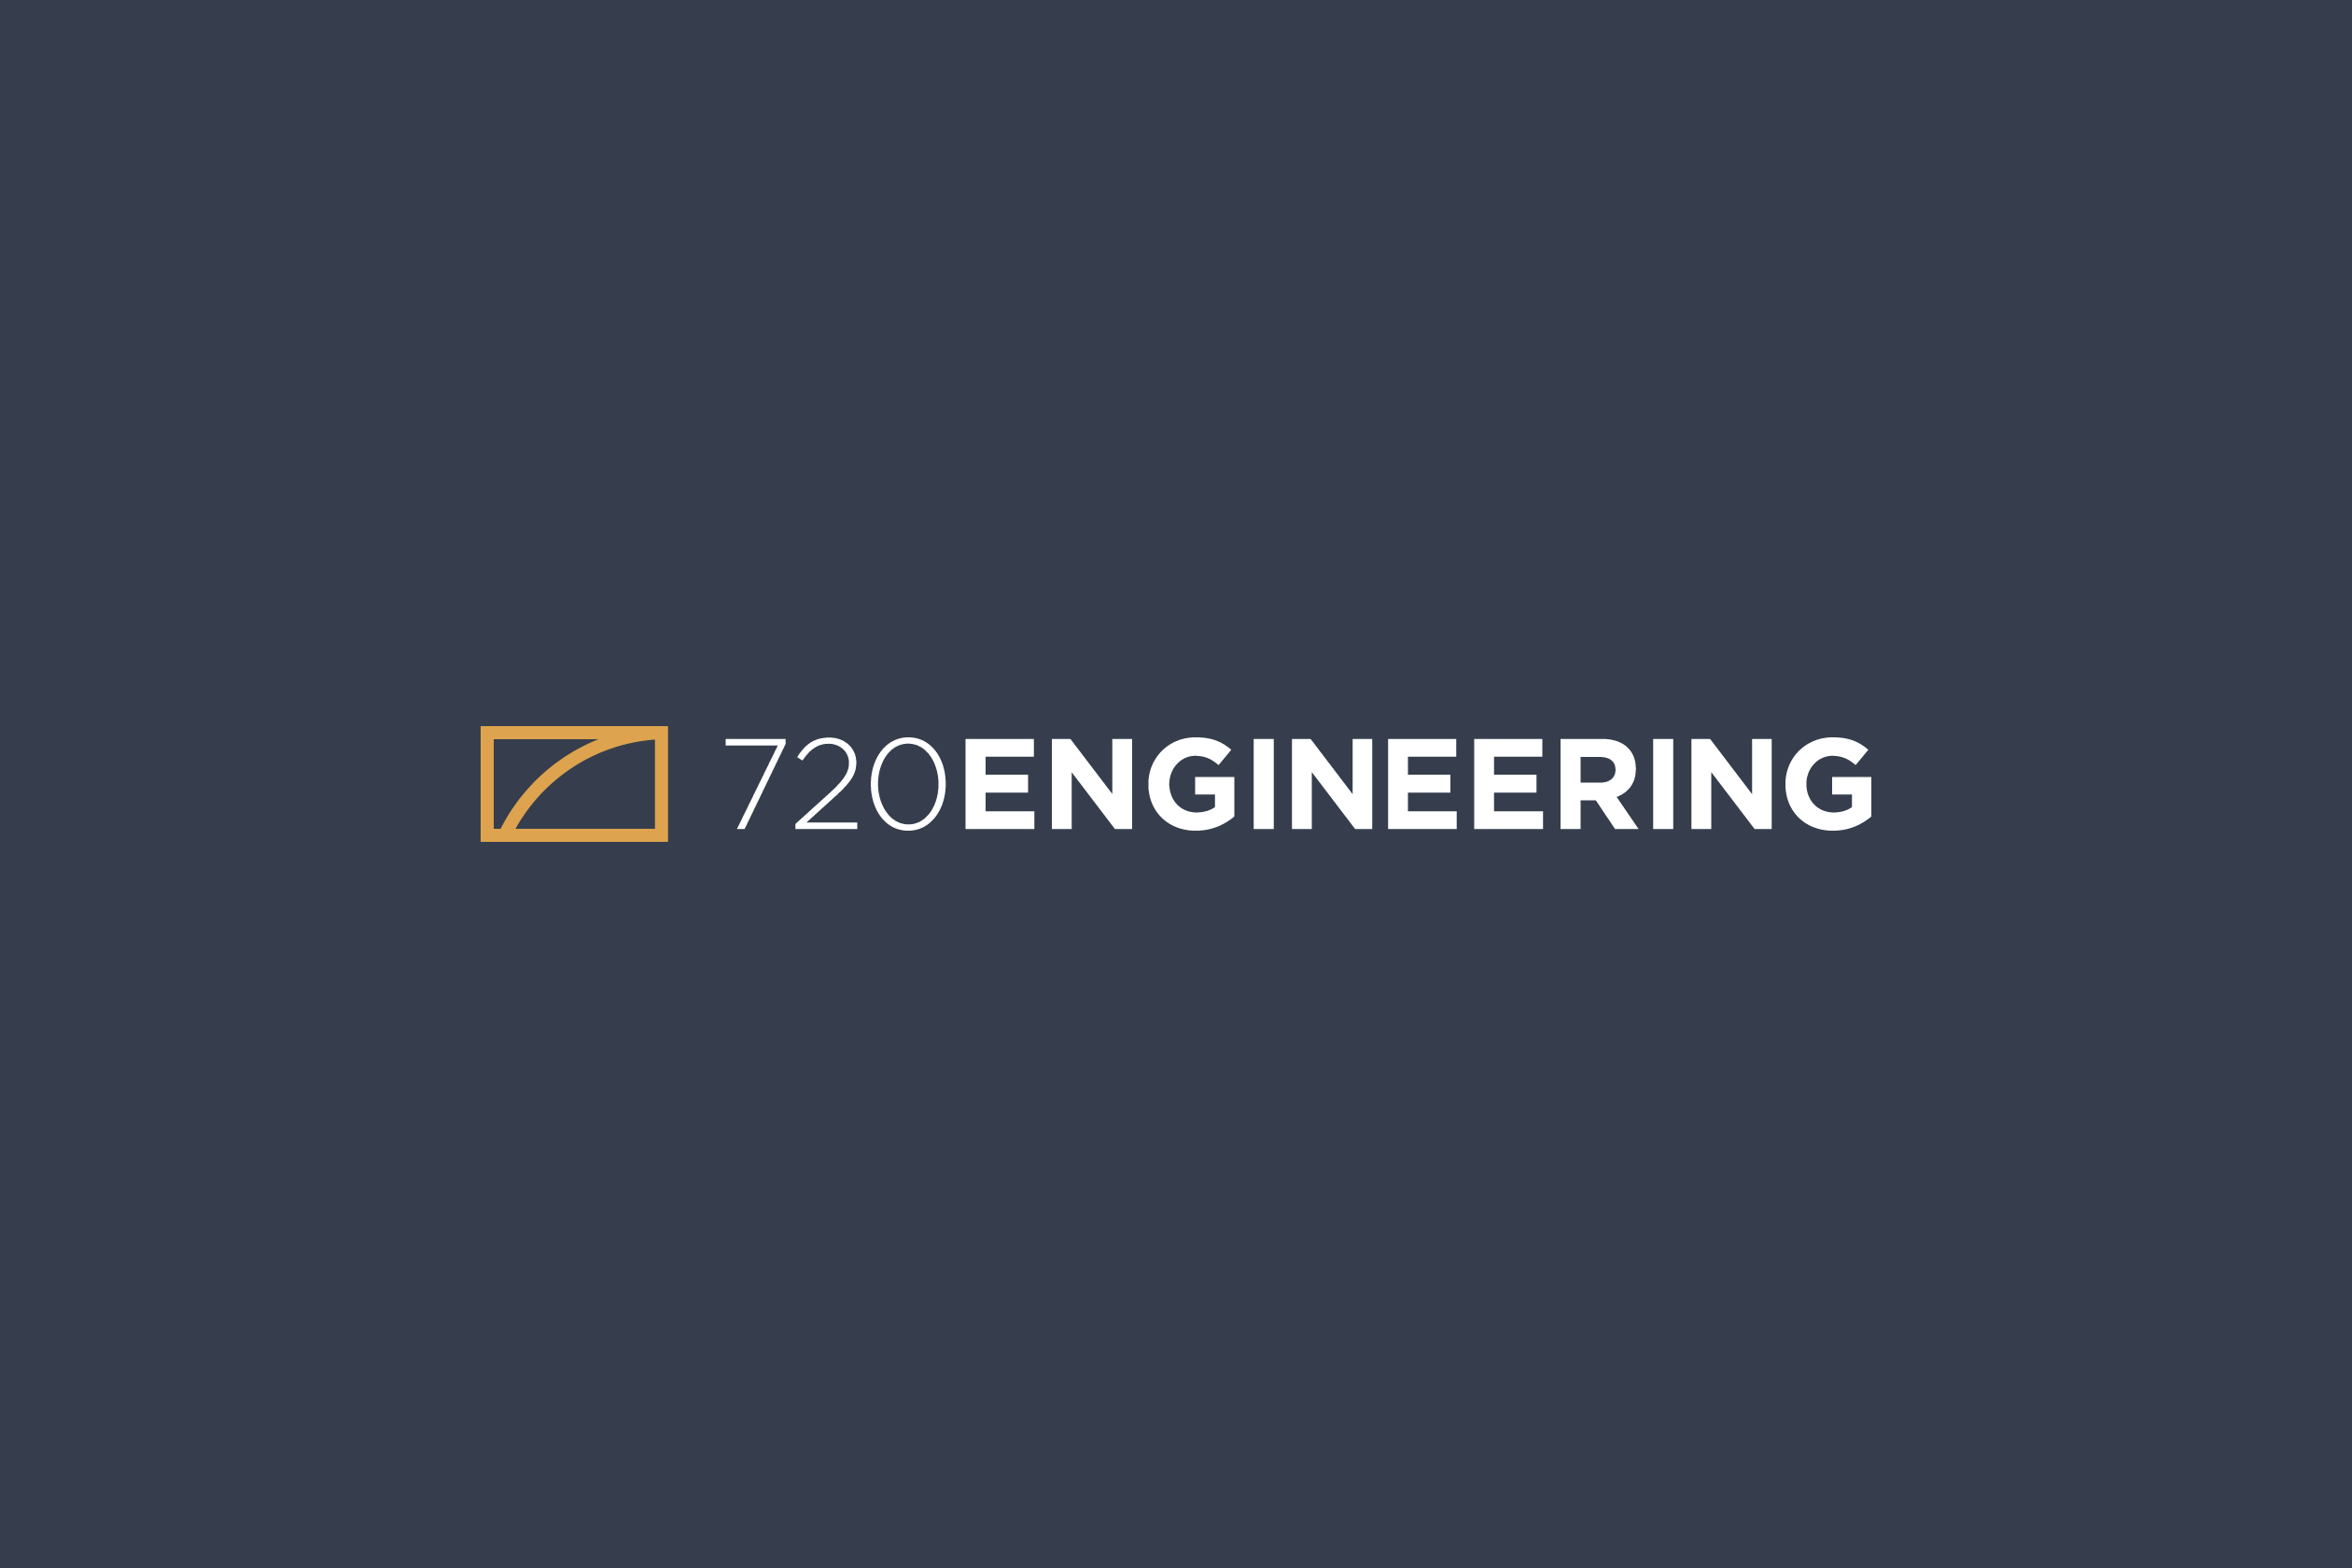 720 Engineering Logo